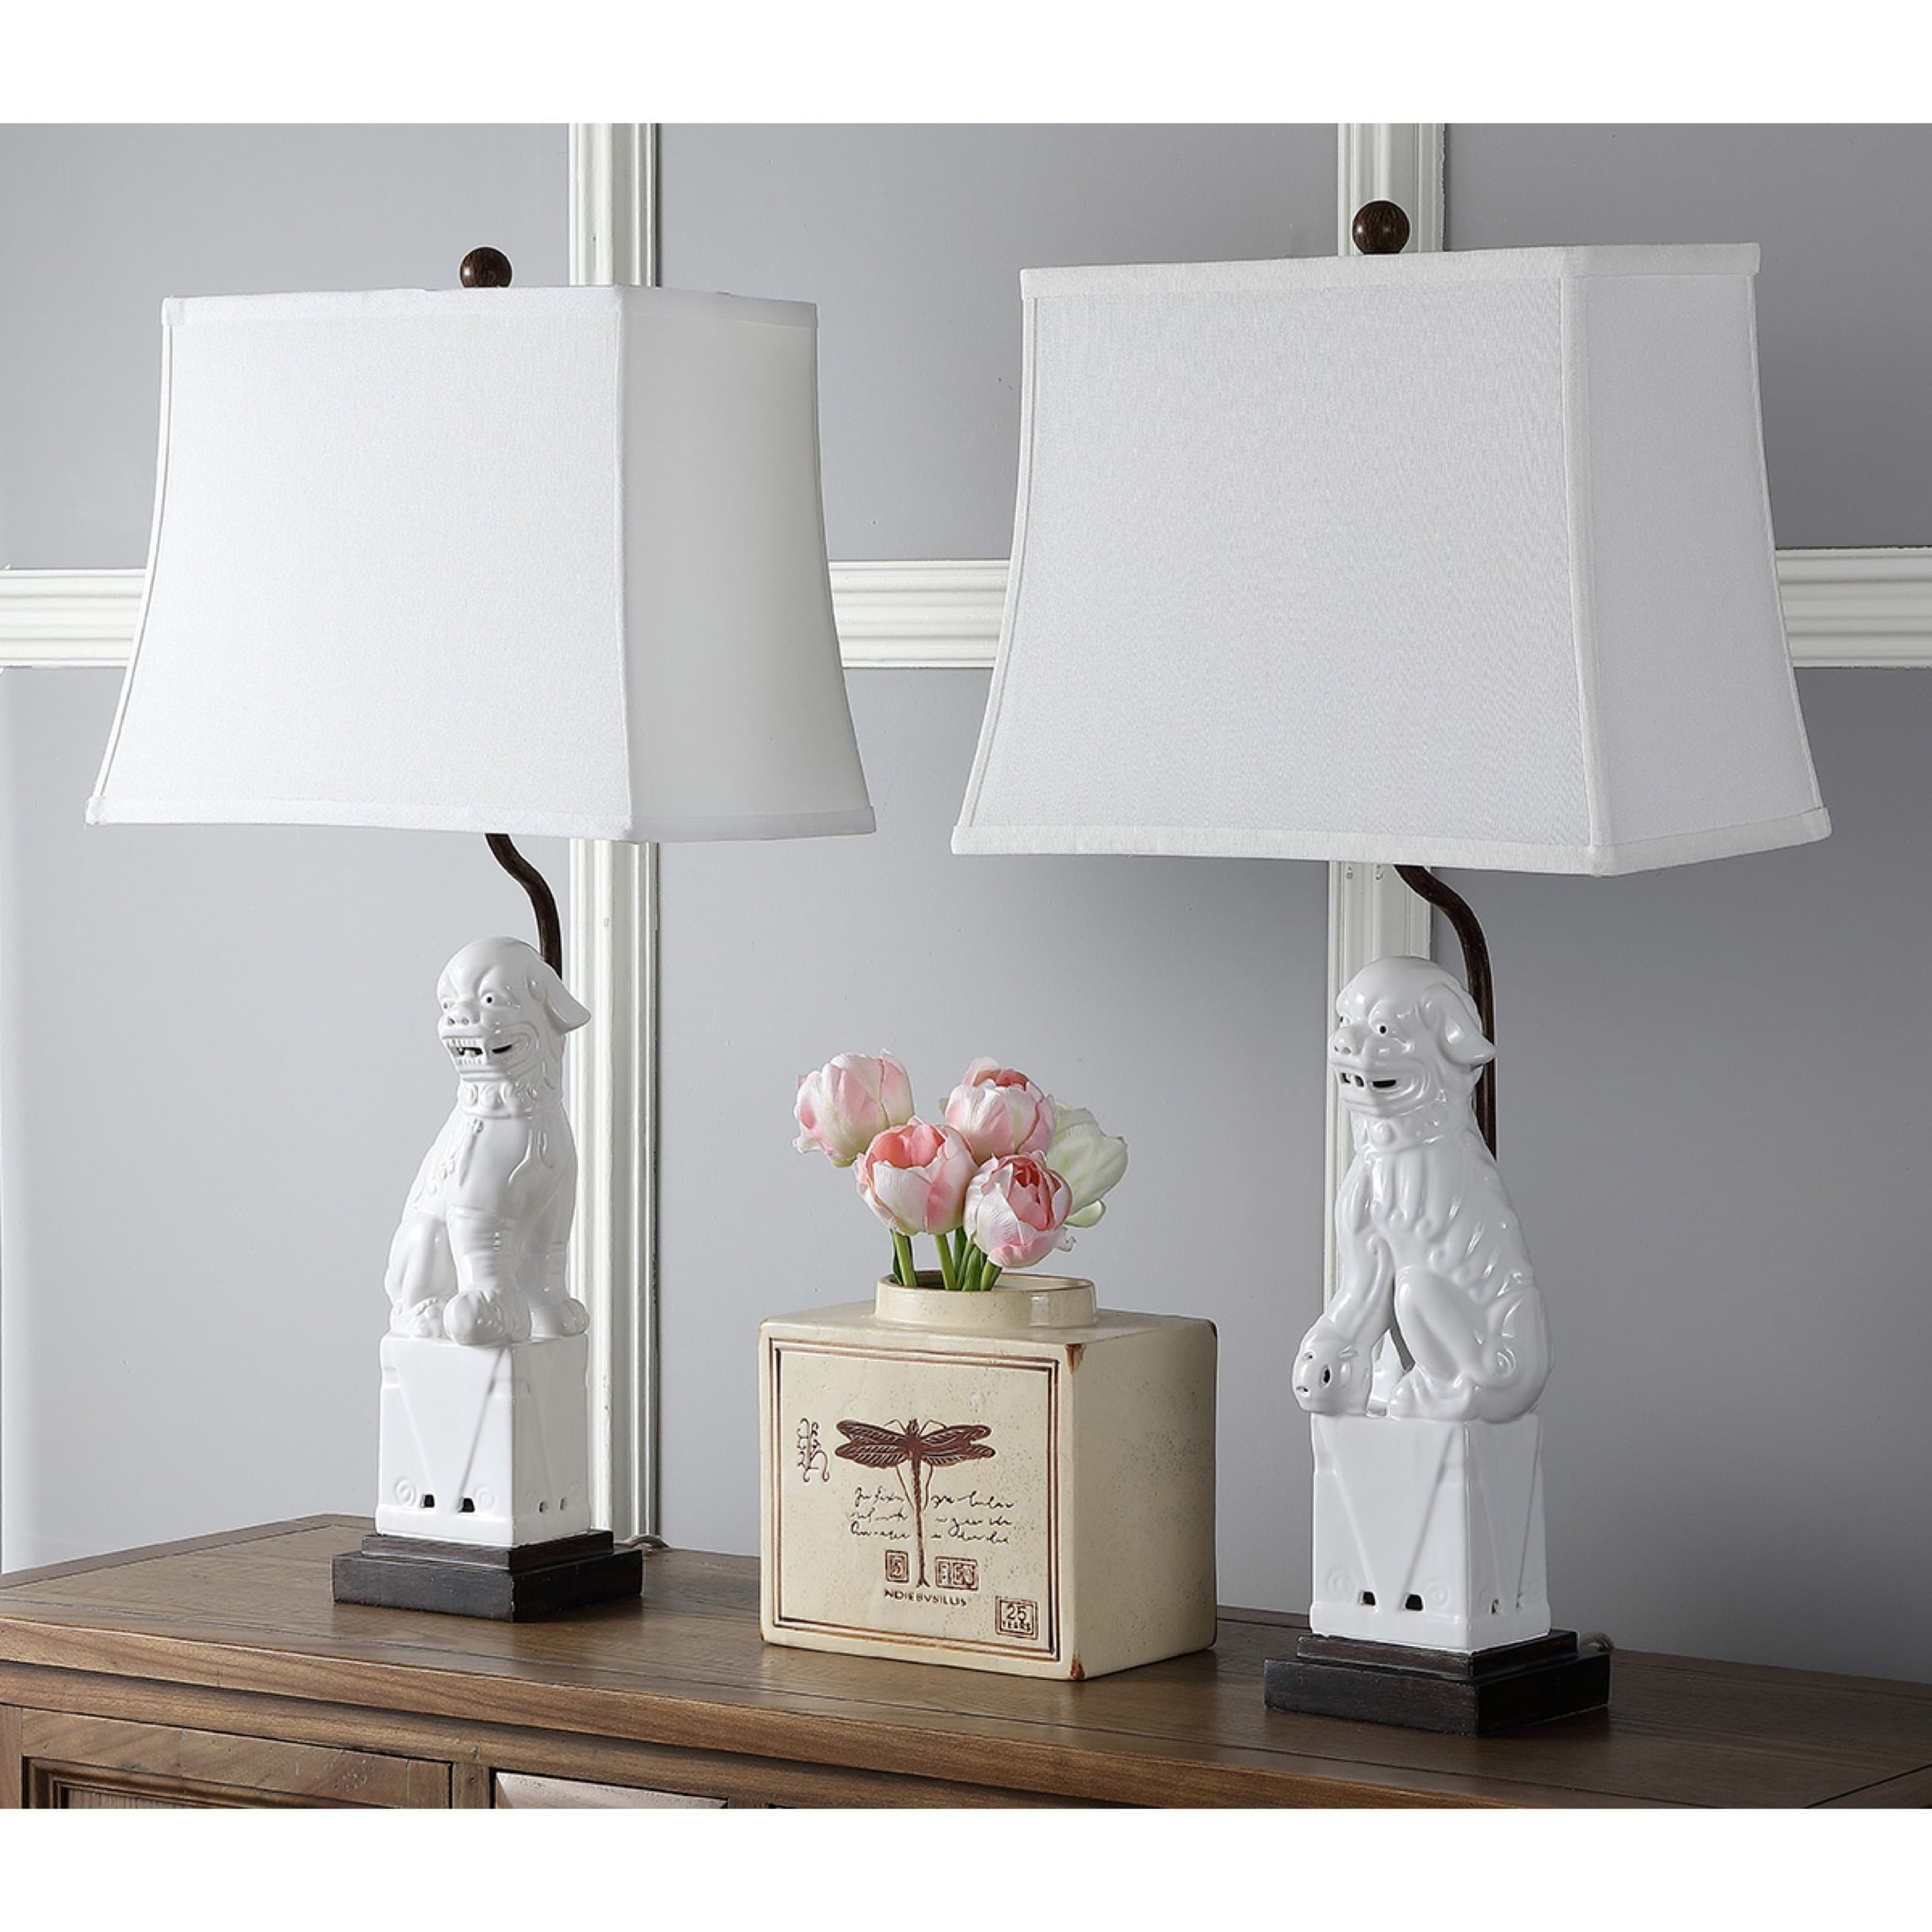 Safavieh Lighting 28 Inch White Foo Dog Table Lamp (Set Of 2)   Free  Shipping Today   Overstock.com   16240990